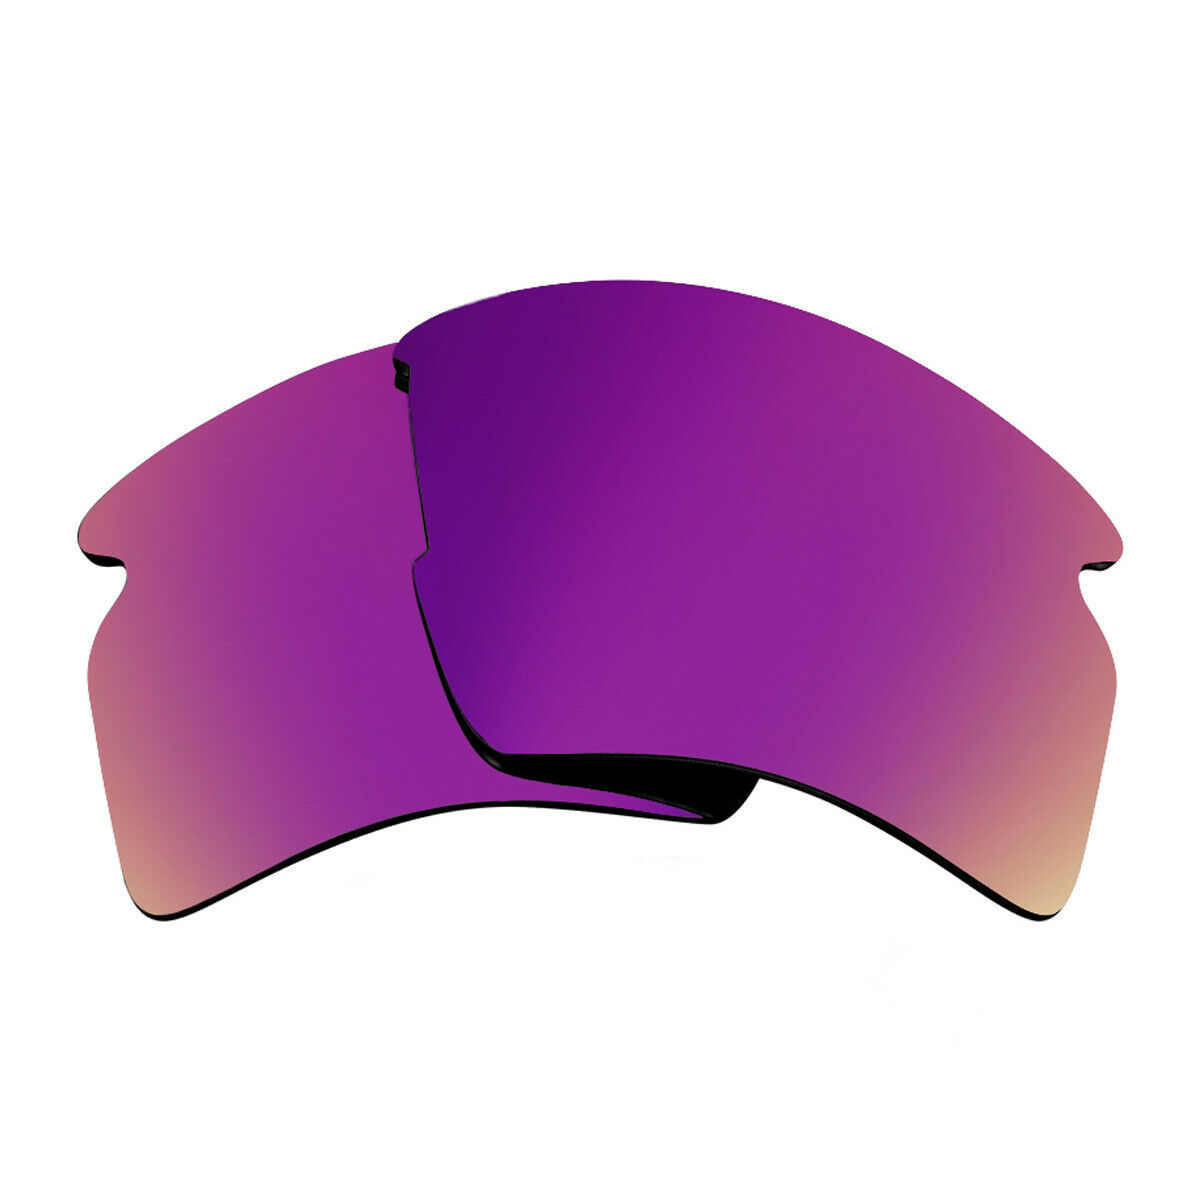 Primary image for Replacement Lenses for-Oakley Flak 2.0 XL Sunglasses Anti-Scratch Purple Mirror